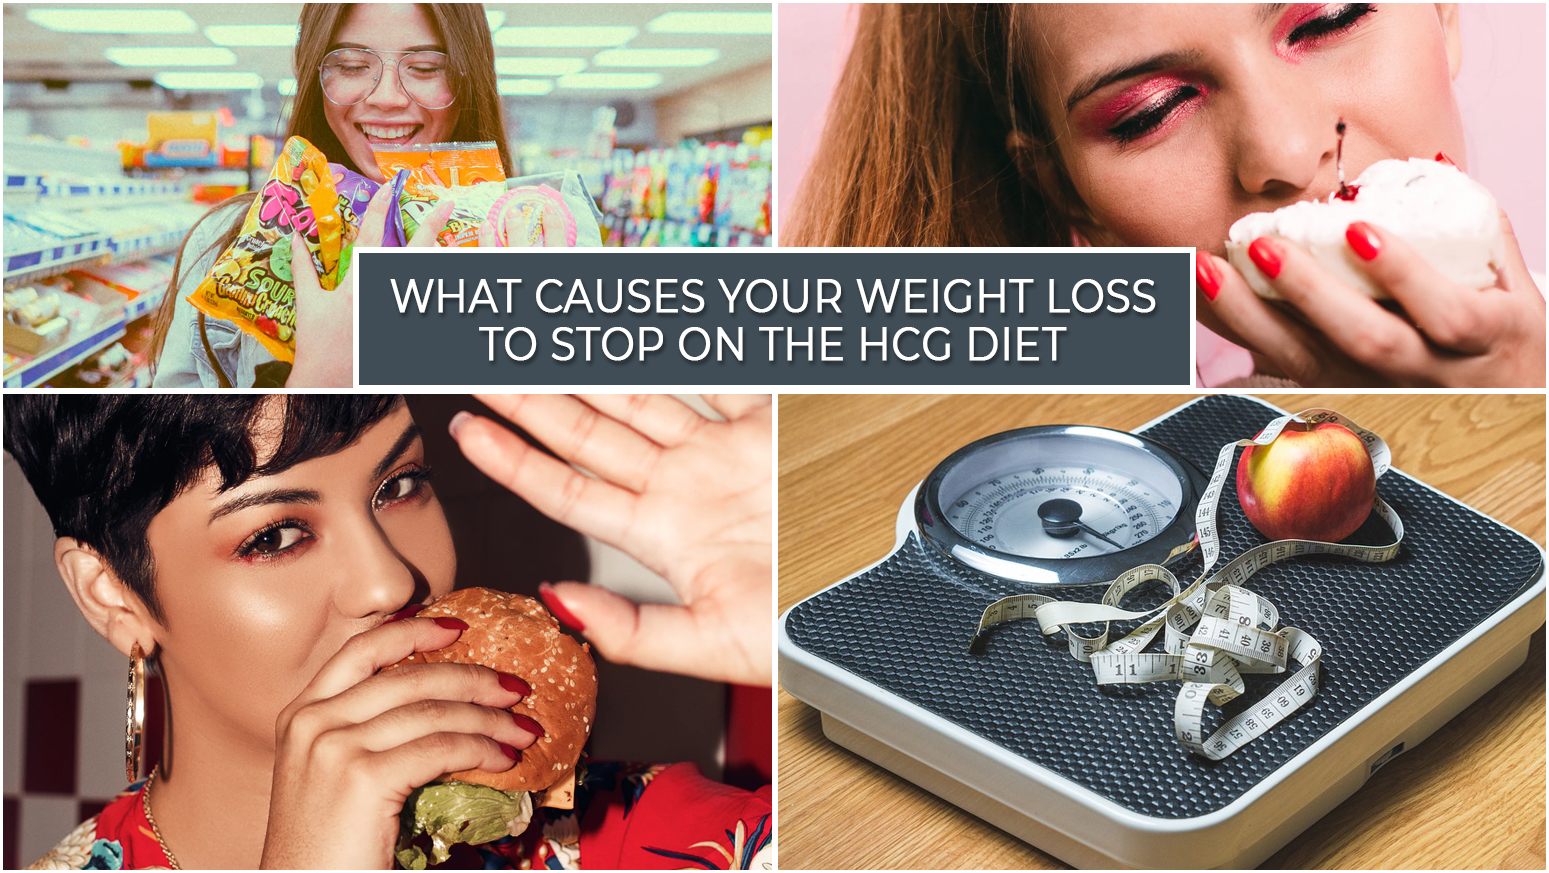 WHAT CAUSES YOUR WEIGHT LOSS TO STOP ON THE HCG DIET